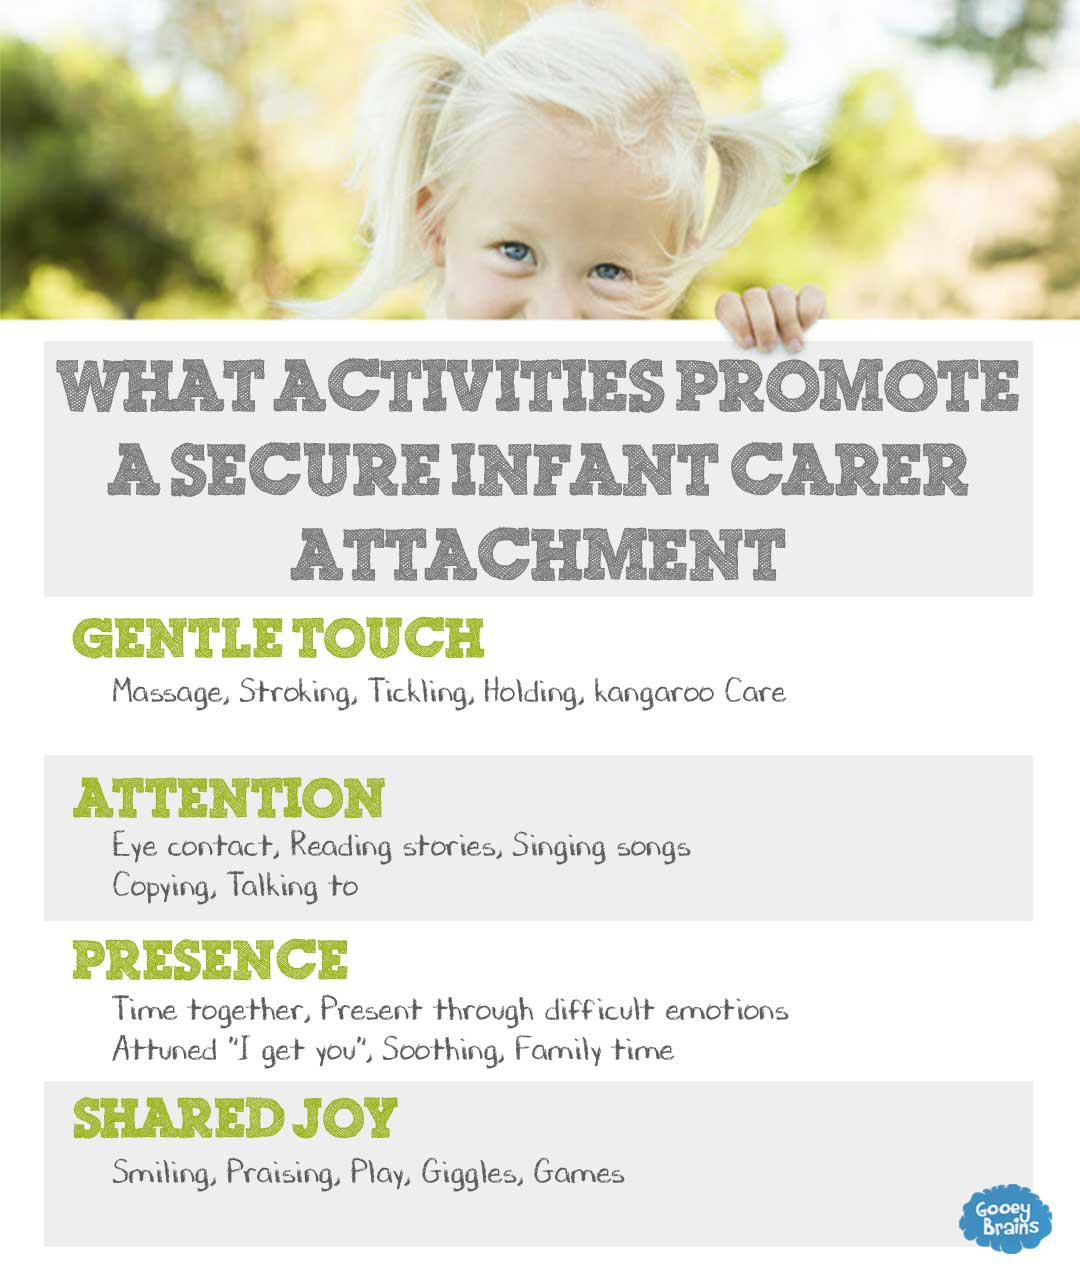 what activities promote a secure infant carer attachment